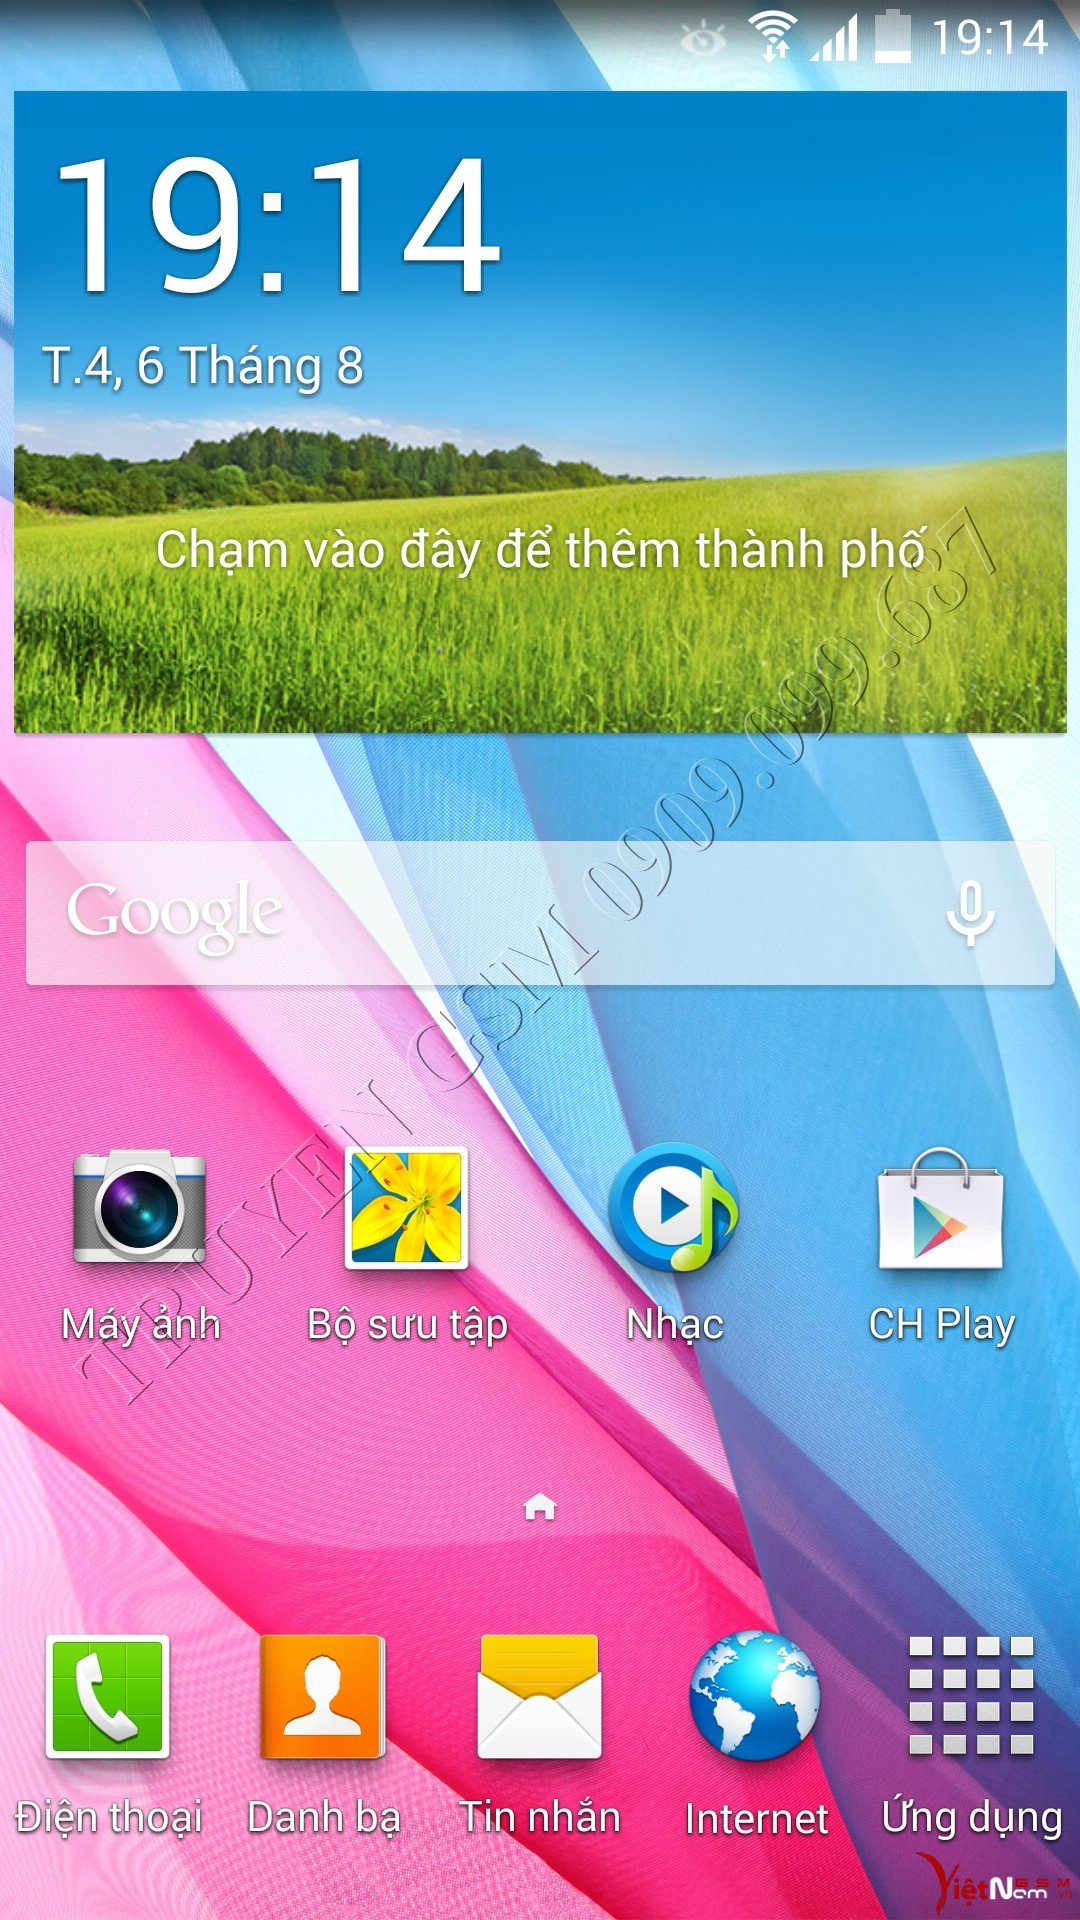 Screenshot_2014-08-06-19-14-34.jpg